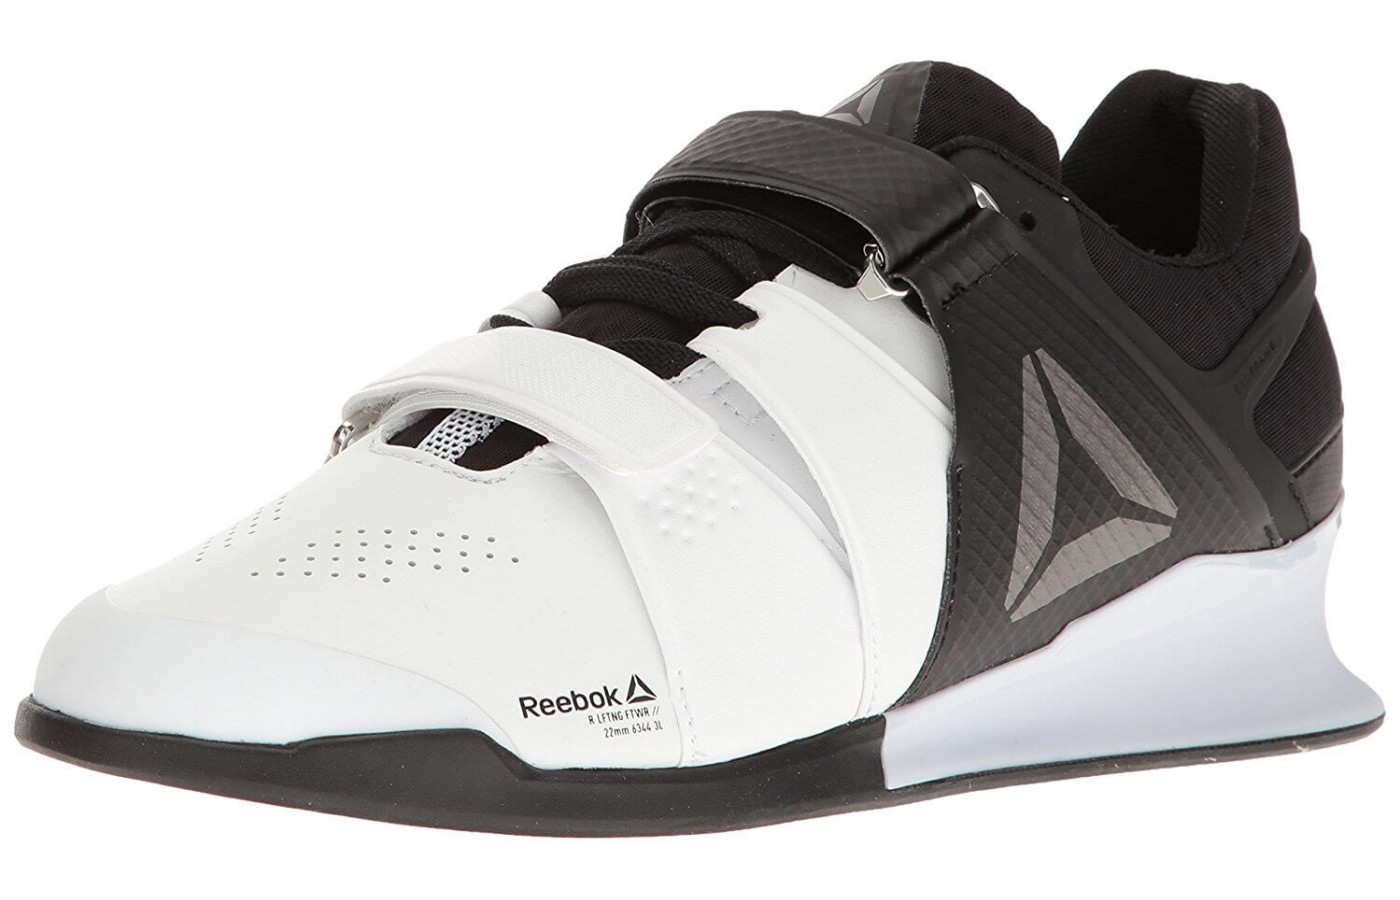 The Reebok Legacy Lifter features Flexcage technology